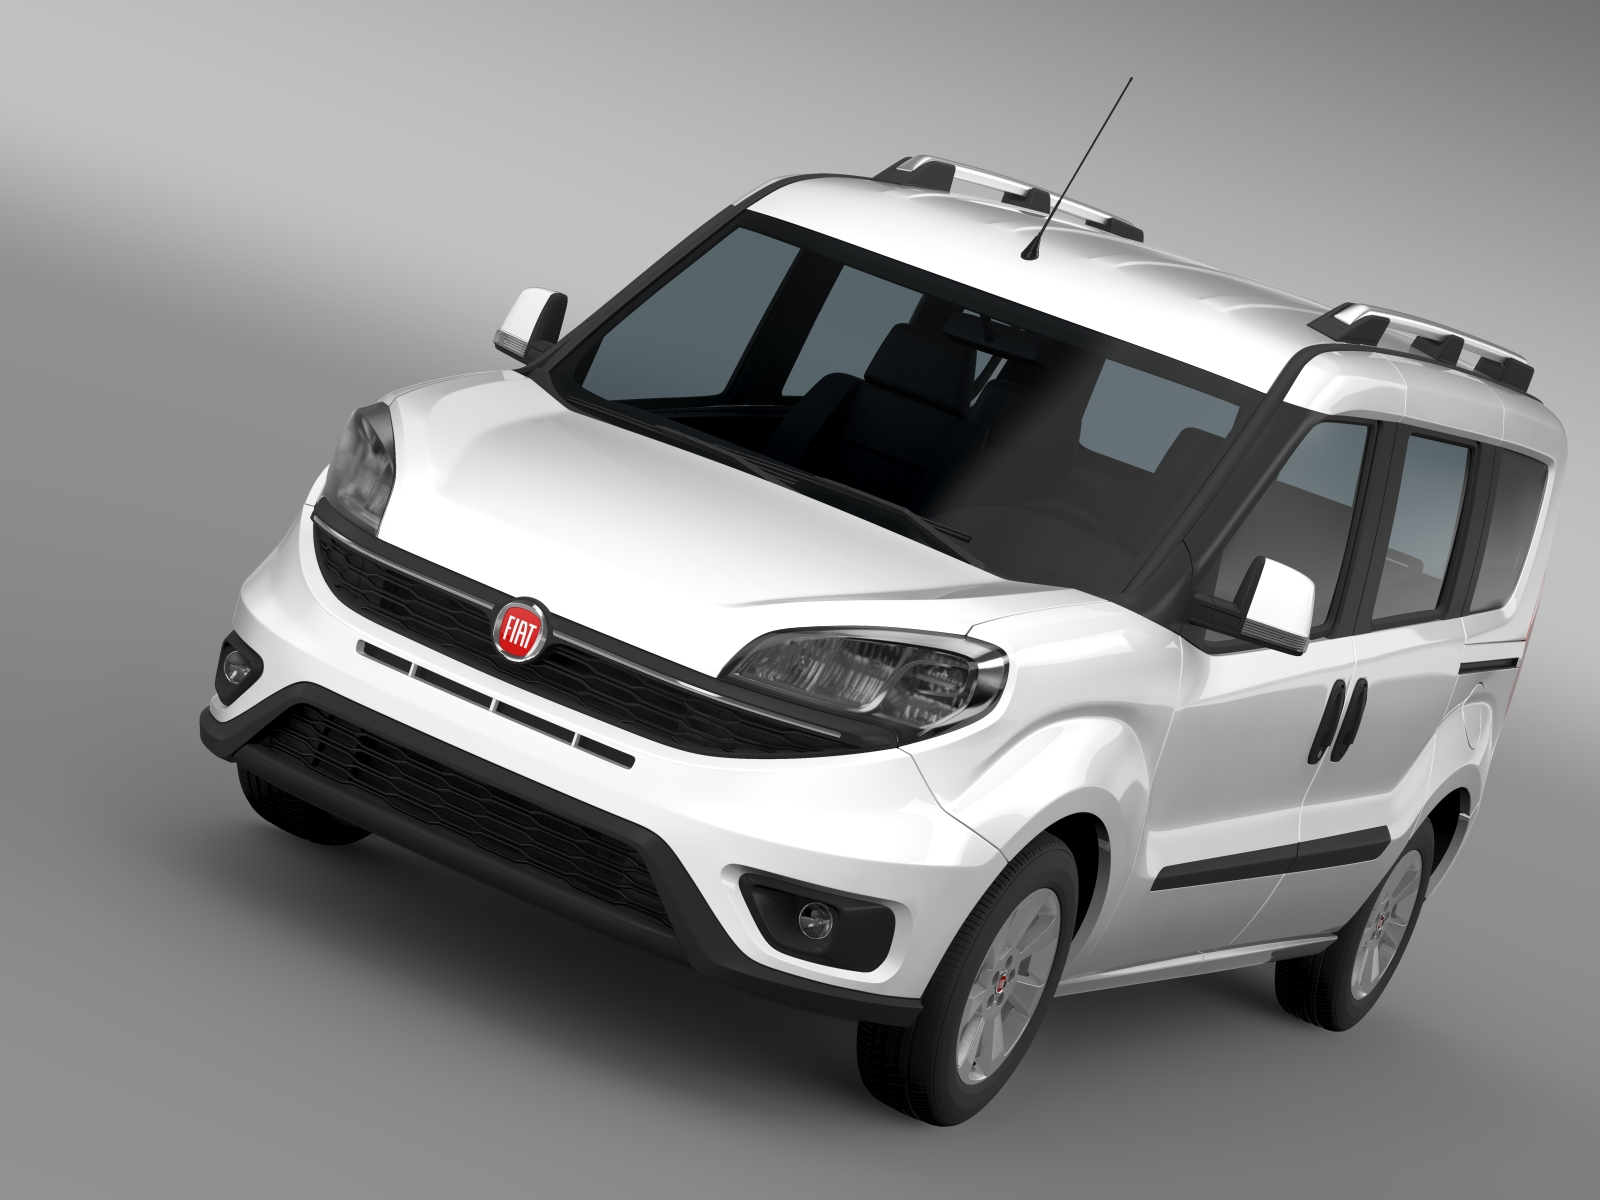 Fiat Doblo 263 UK spec 2015 3d model 3ds max fbx c4d lwo ma mb hrc xsi obj 215411